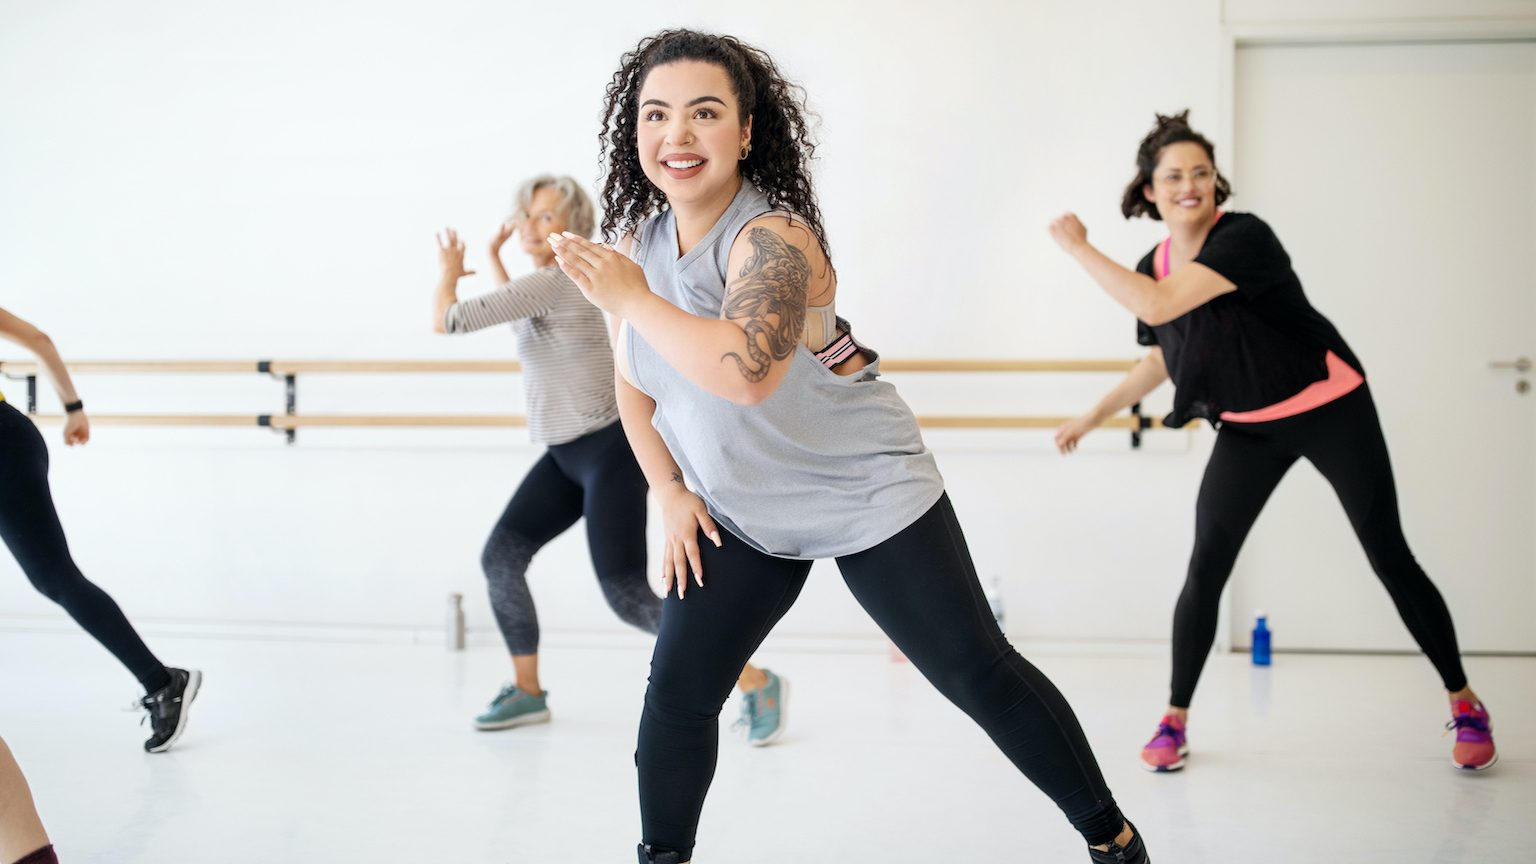 Woman learning fitness dance moves at health club. Female students learning dance in a fitness class.